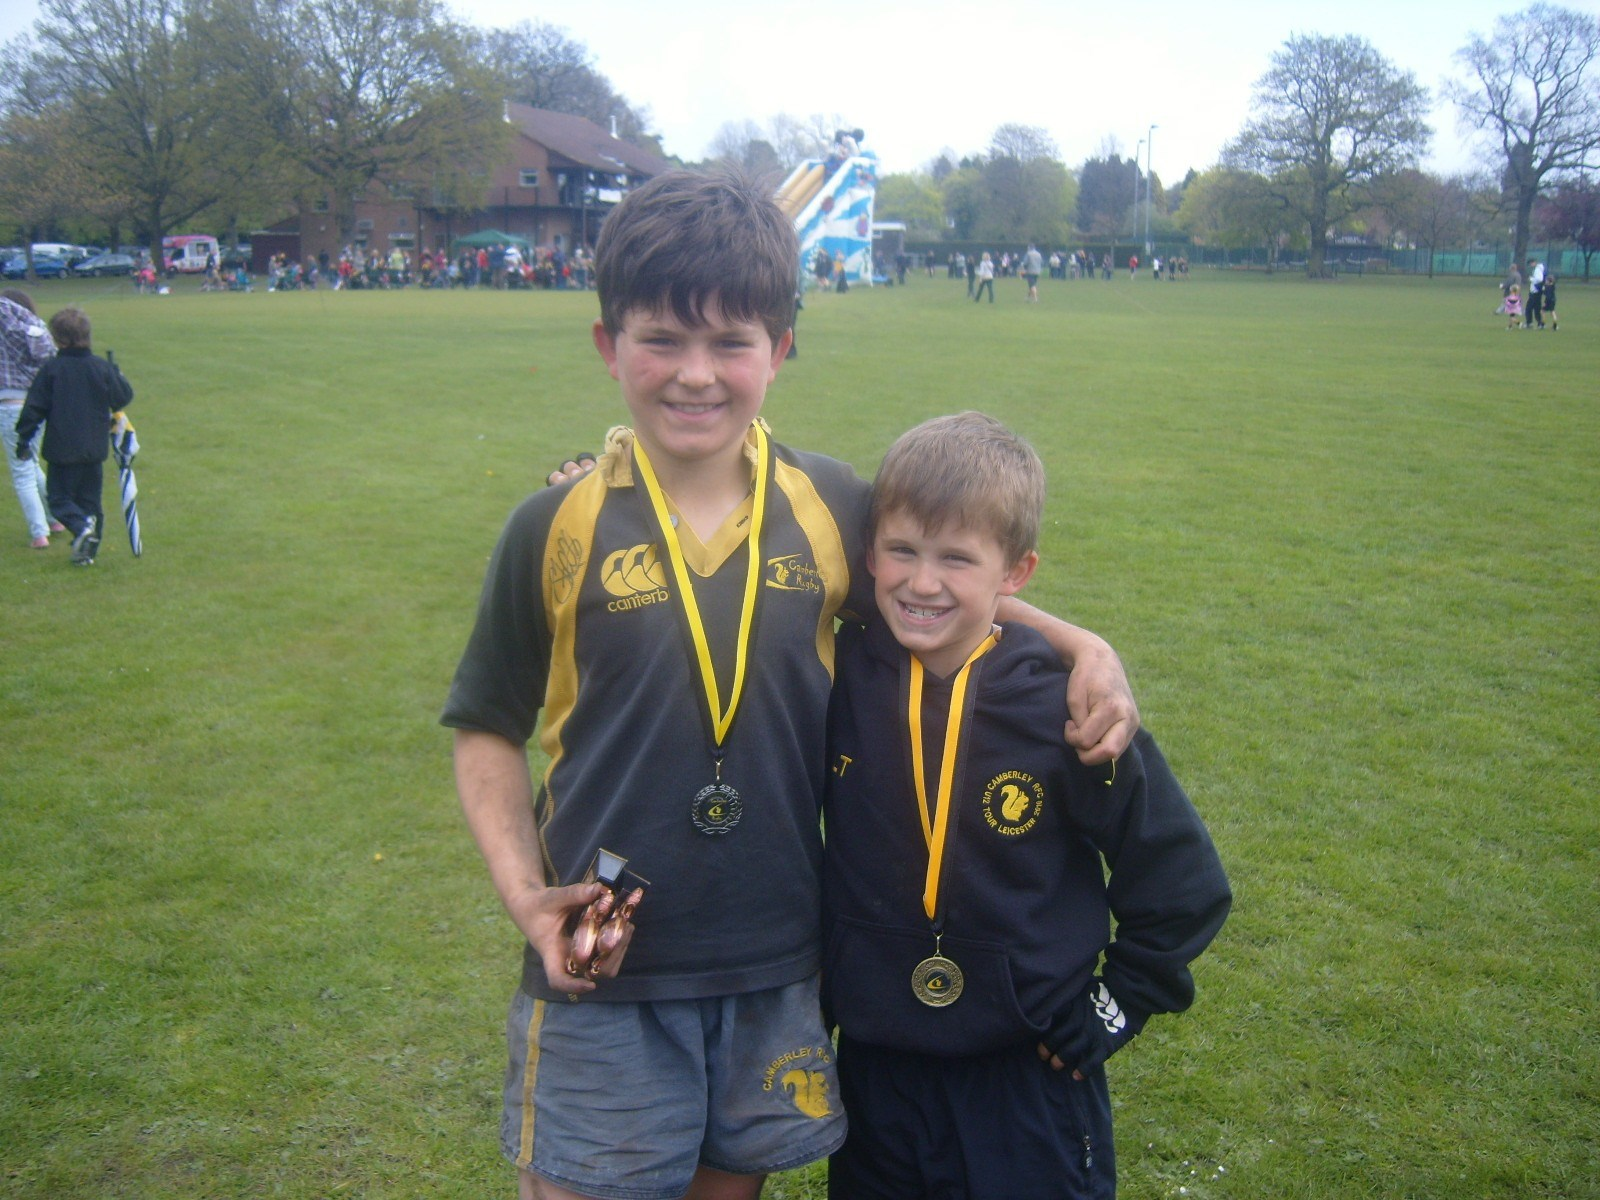 Ben and Josh at Camberley - Medal and Trophy Winners!